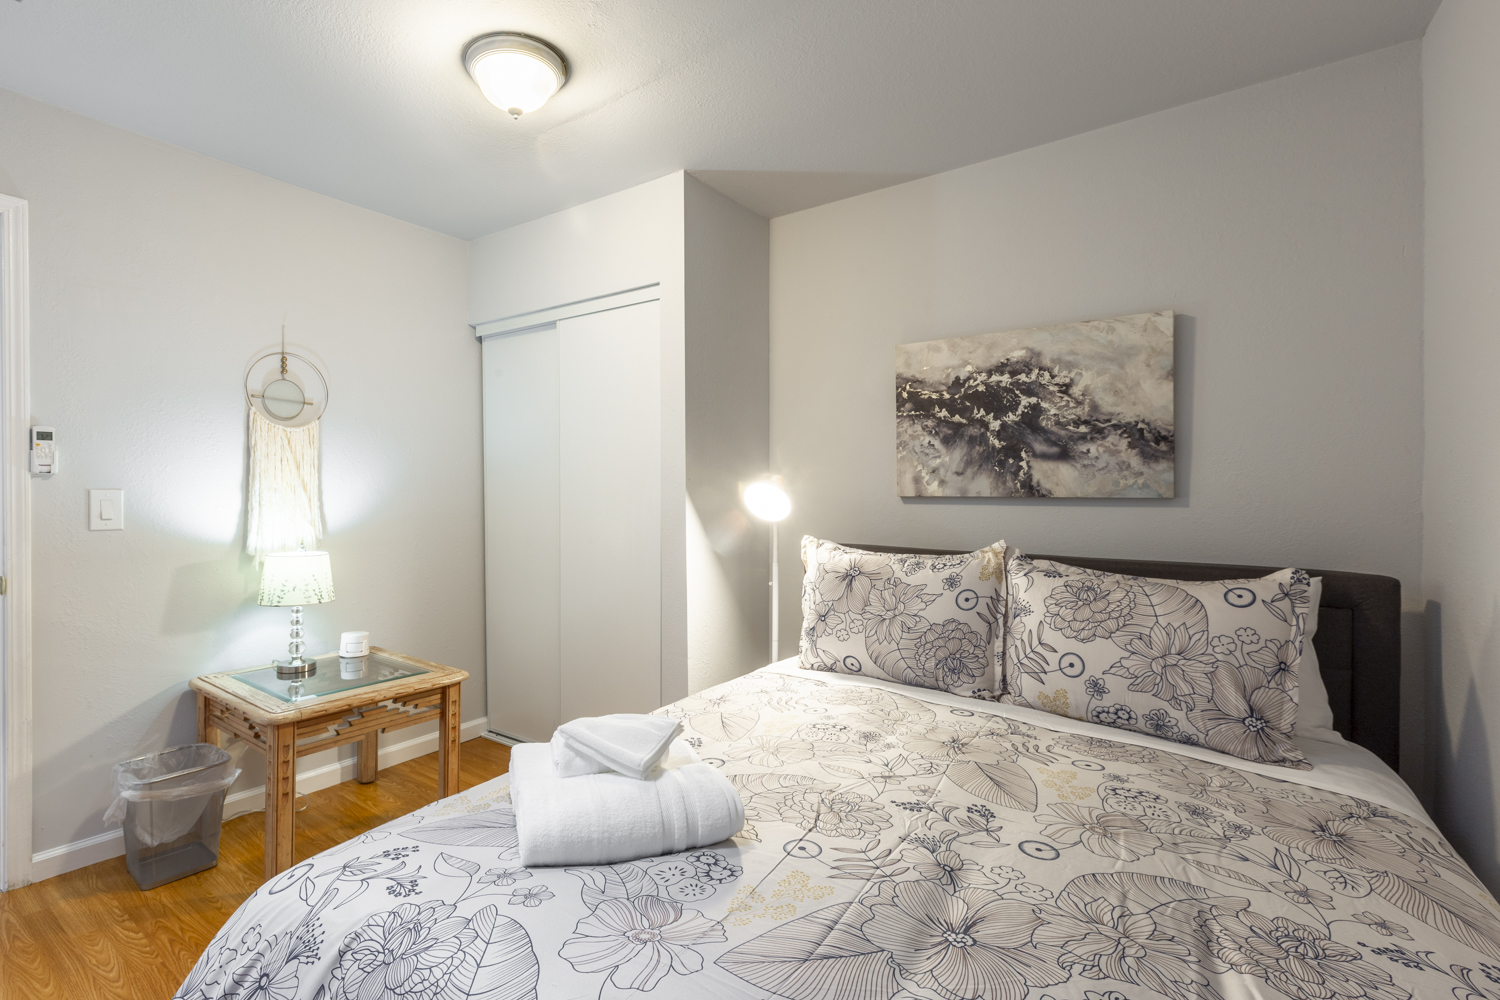 @ Marbella Lane - 2BR Guest House | DTWN RWC | Parking